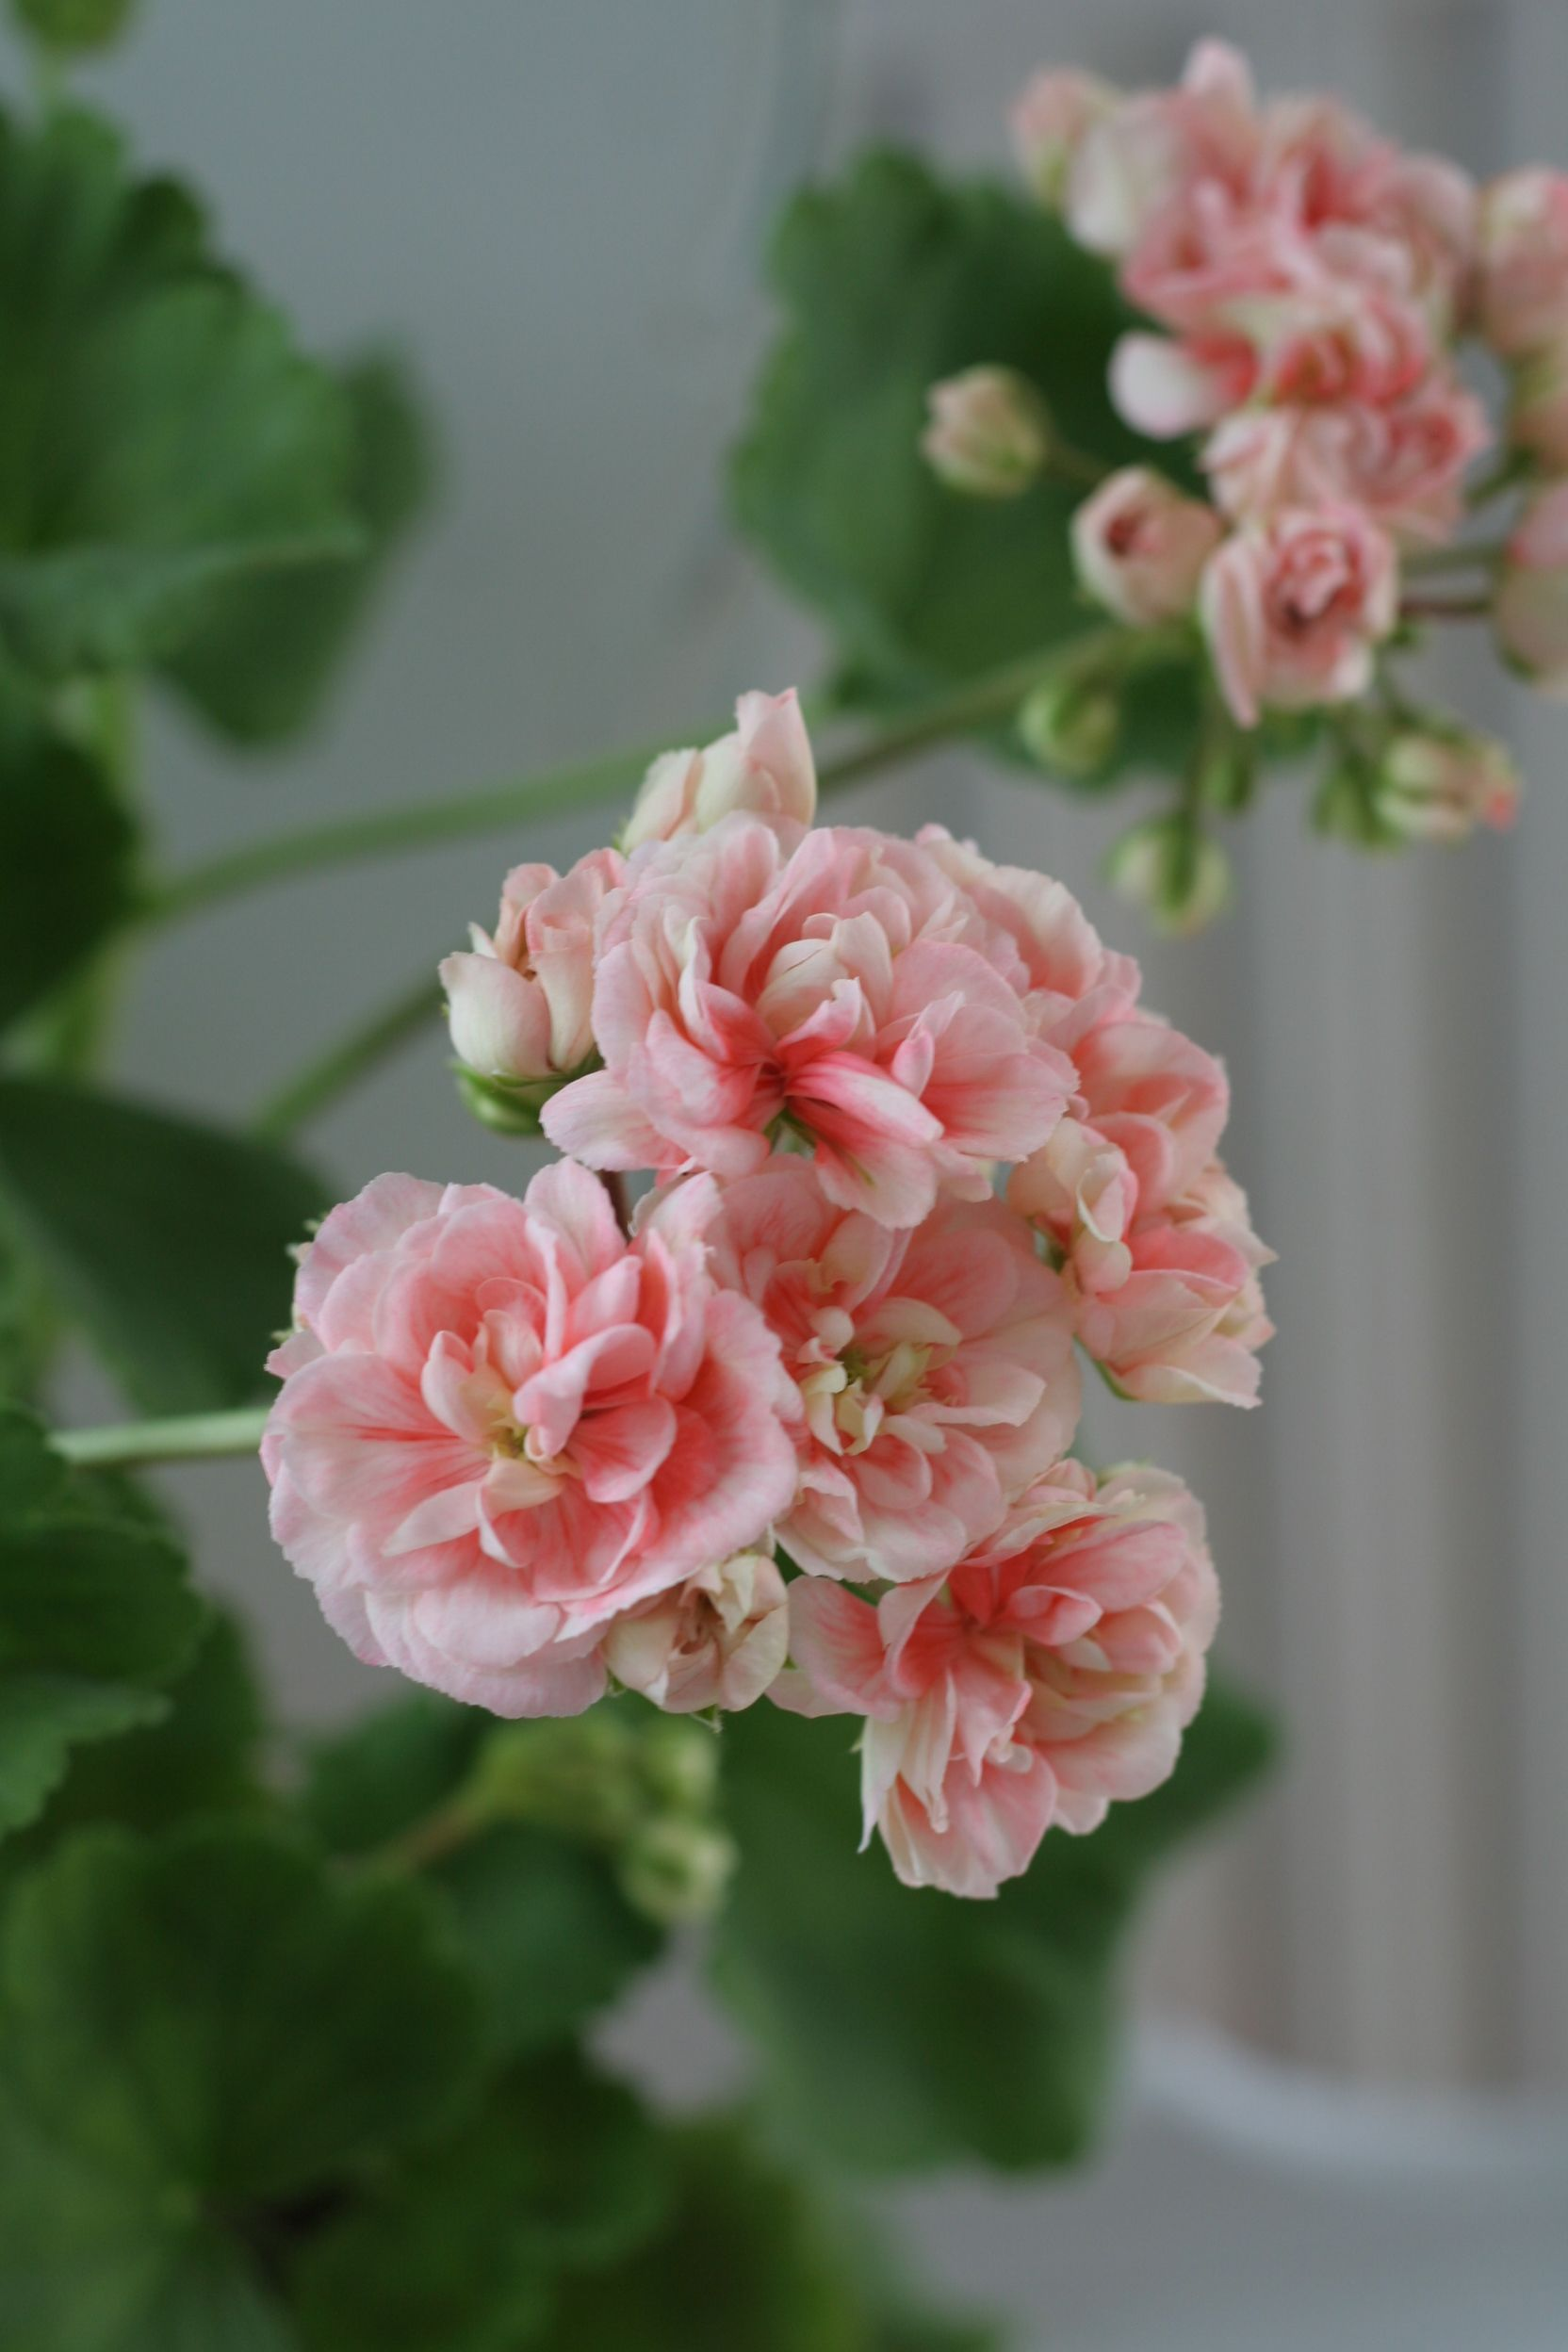 Big apple rosebud Pink geranium, Flowers, Rose buds